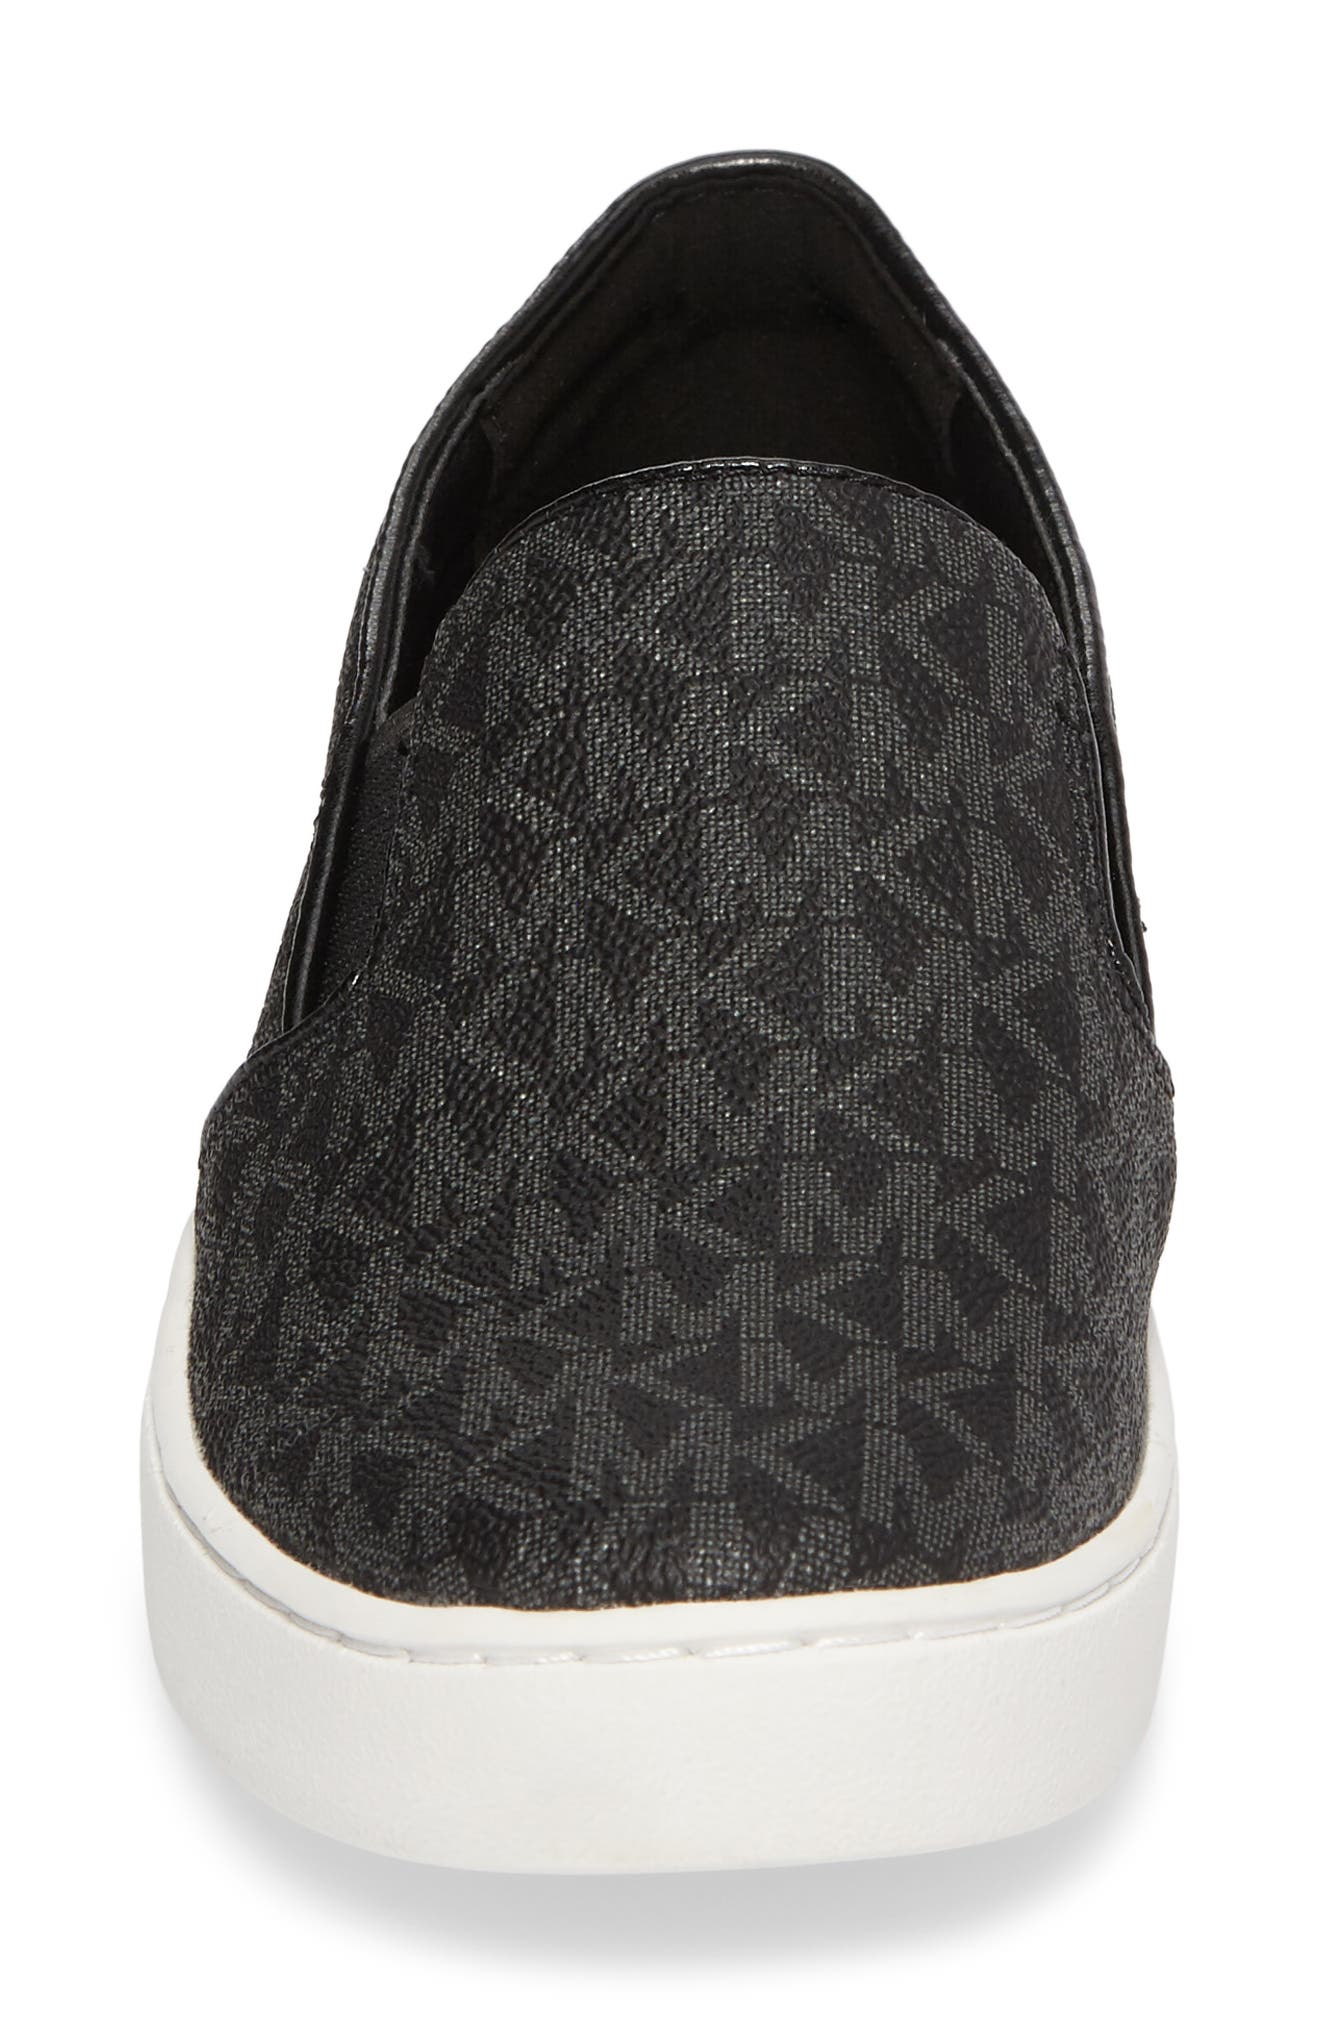 MICHAEL MICHAEL KORS, Keaton Slip-On Sneaker, Alternate thumbnail 4, color, BLACK CANVAS